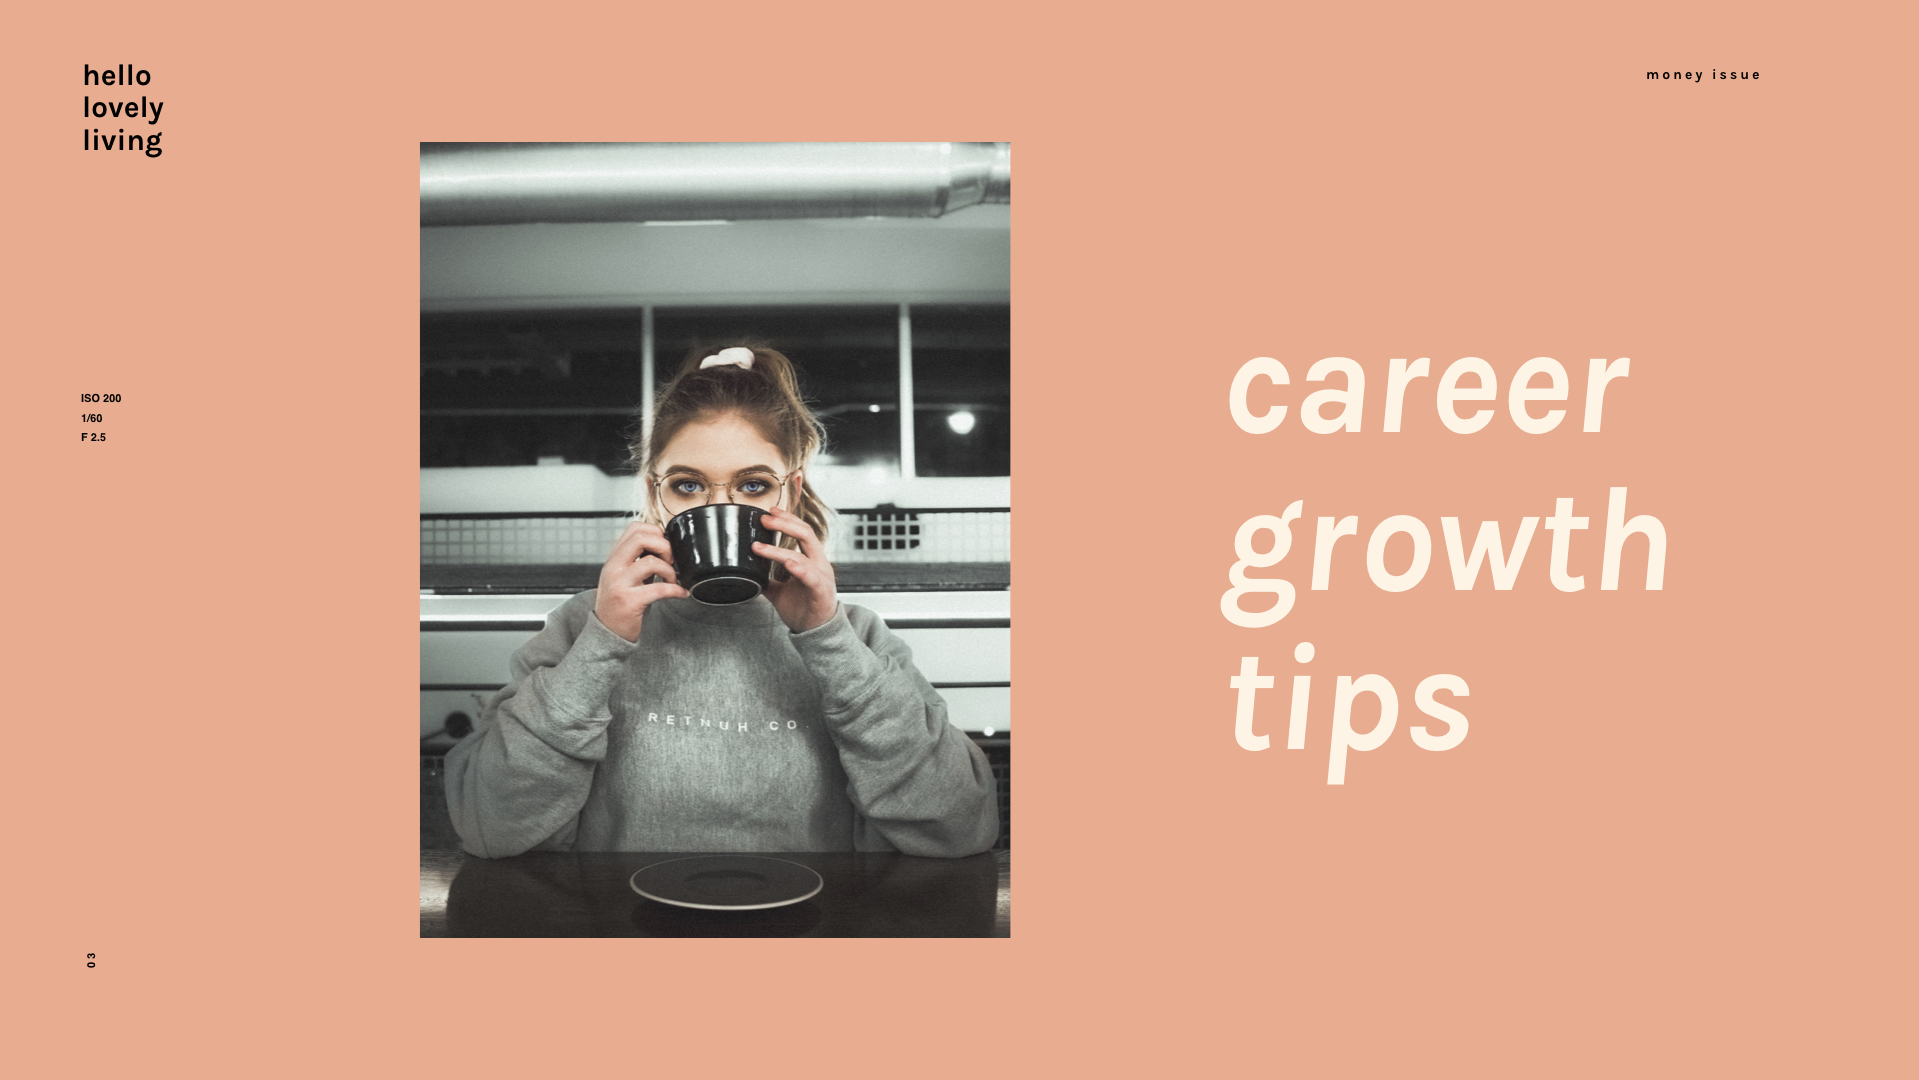 hellolovelyliving.com | Career Growth Tips For The Career Driven Woman